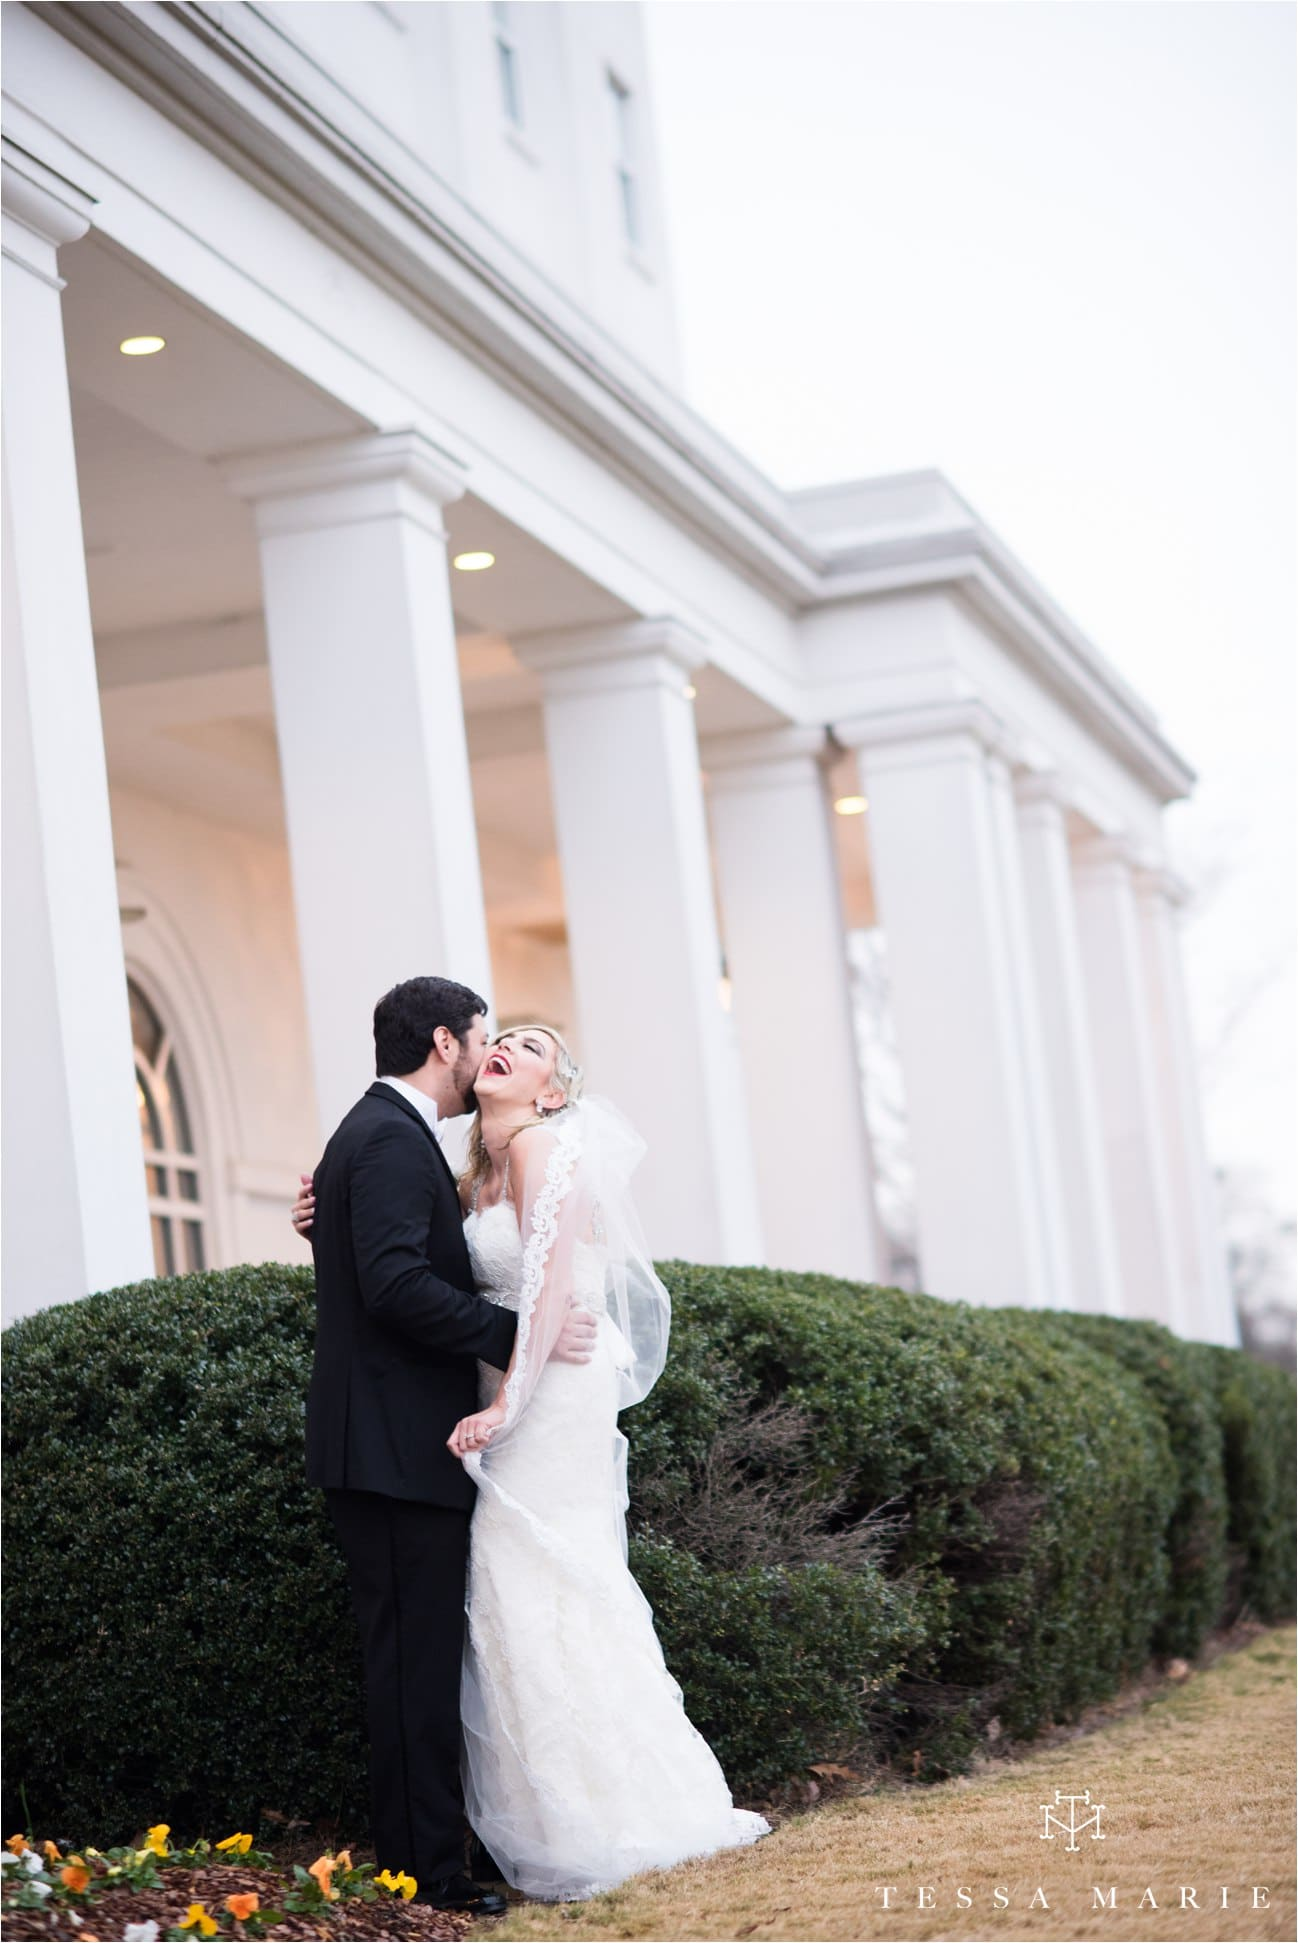 tessa_marie_brickyard_marietta_new_years_wedding_pictures_candid_emotional_wedding_portraits_0055